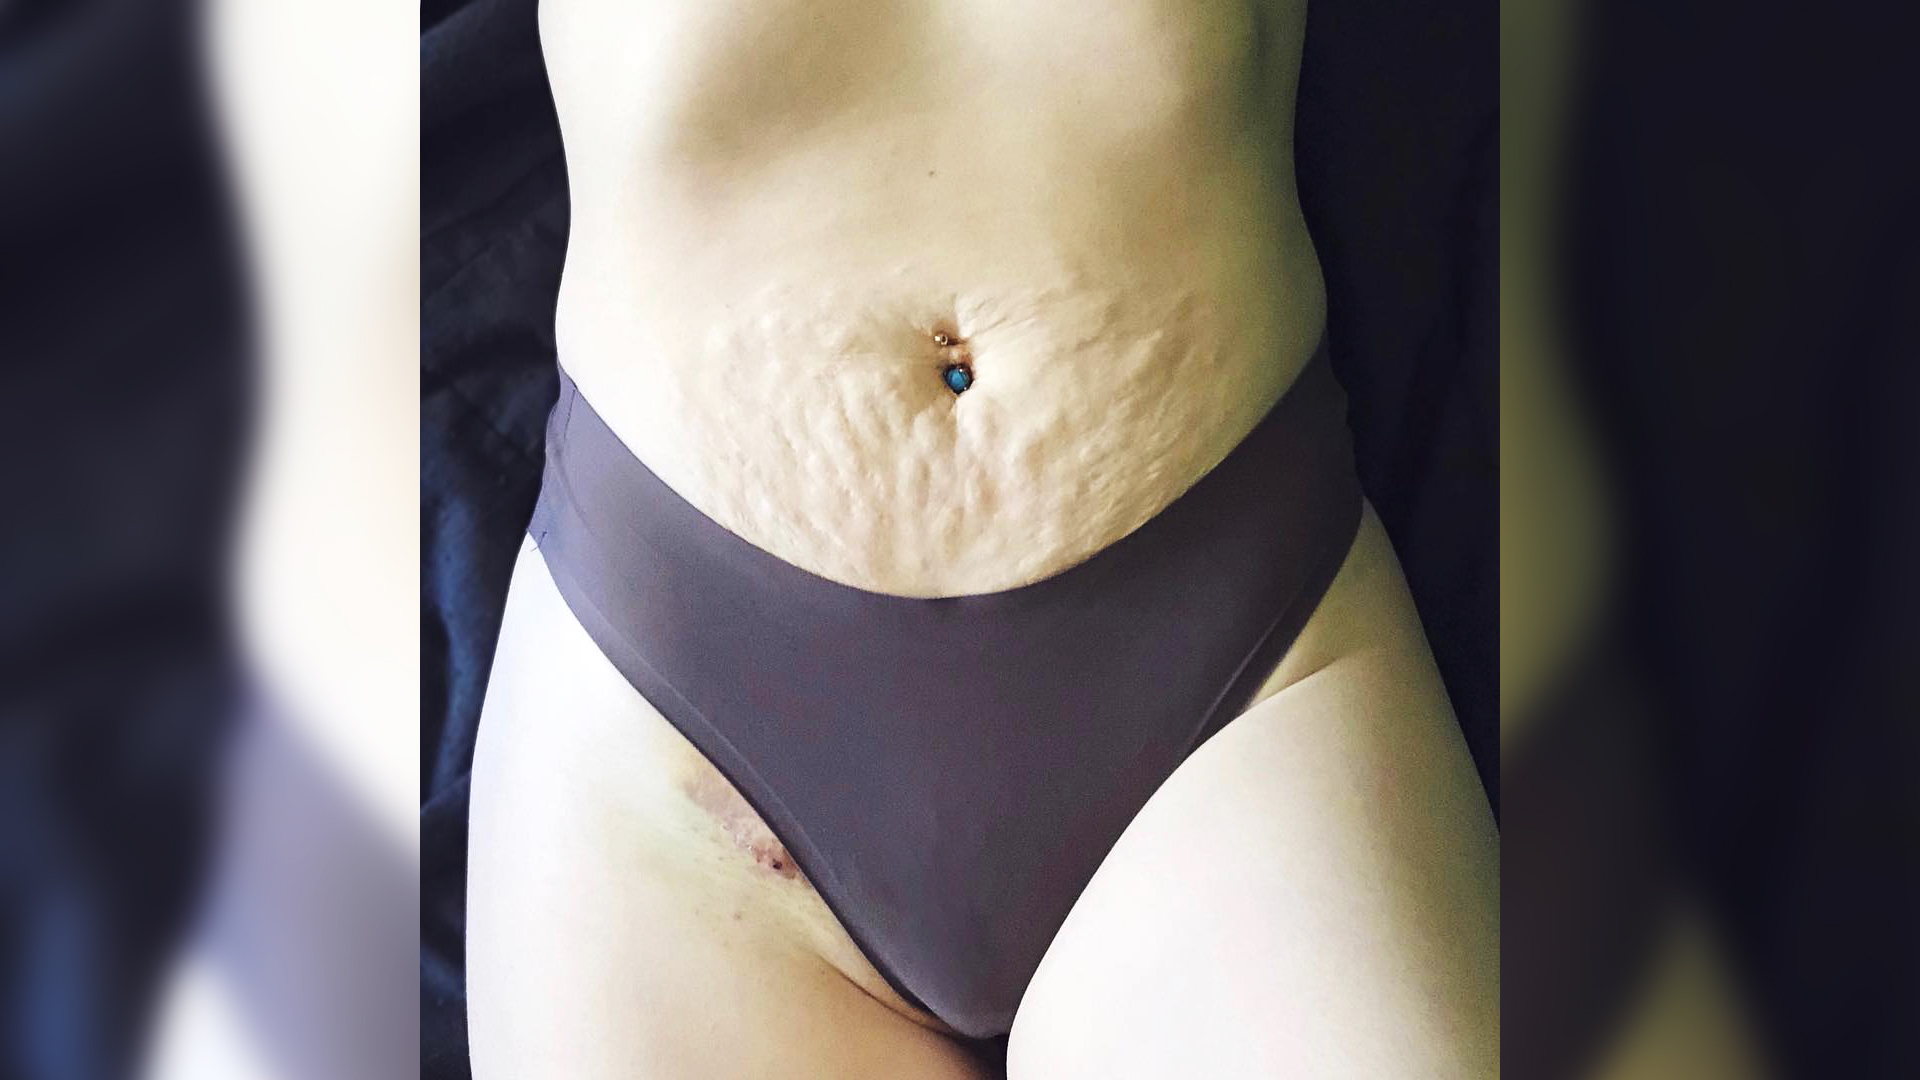 woman skin health body positive belly wellbeing acceptance woman influencer instagram social-media